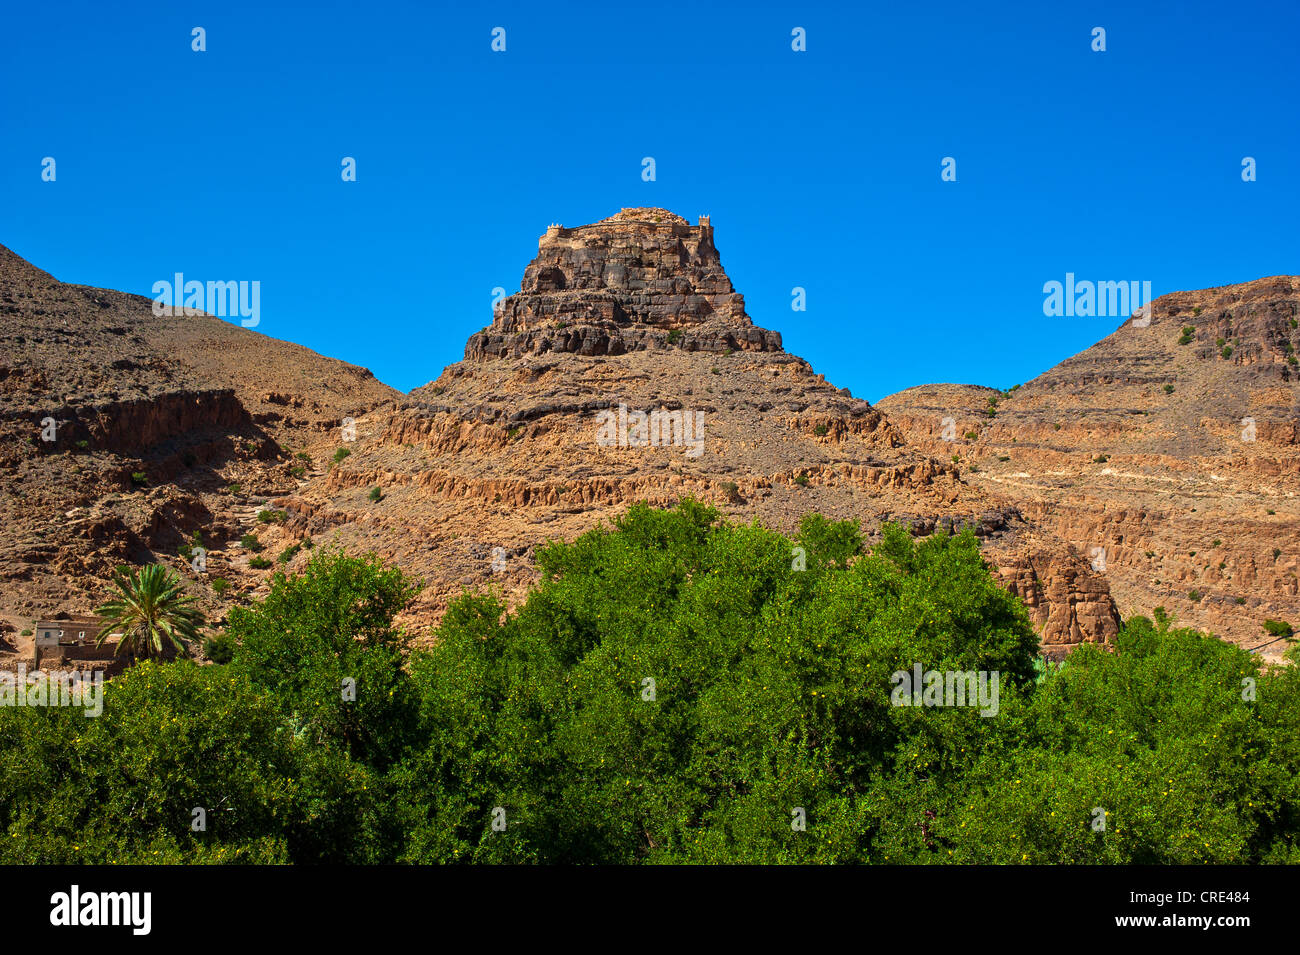 Id Aissa storage castle on a rocky peak, Anti-Atlas Mountains, southern Morocco, Morocco, Africa - Stock Image